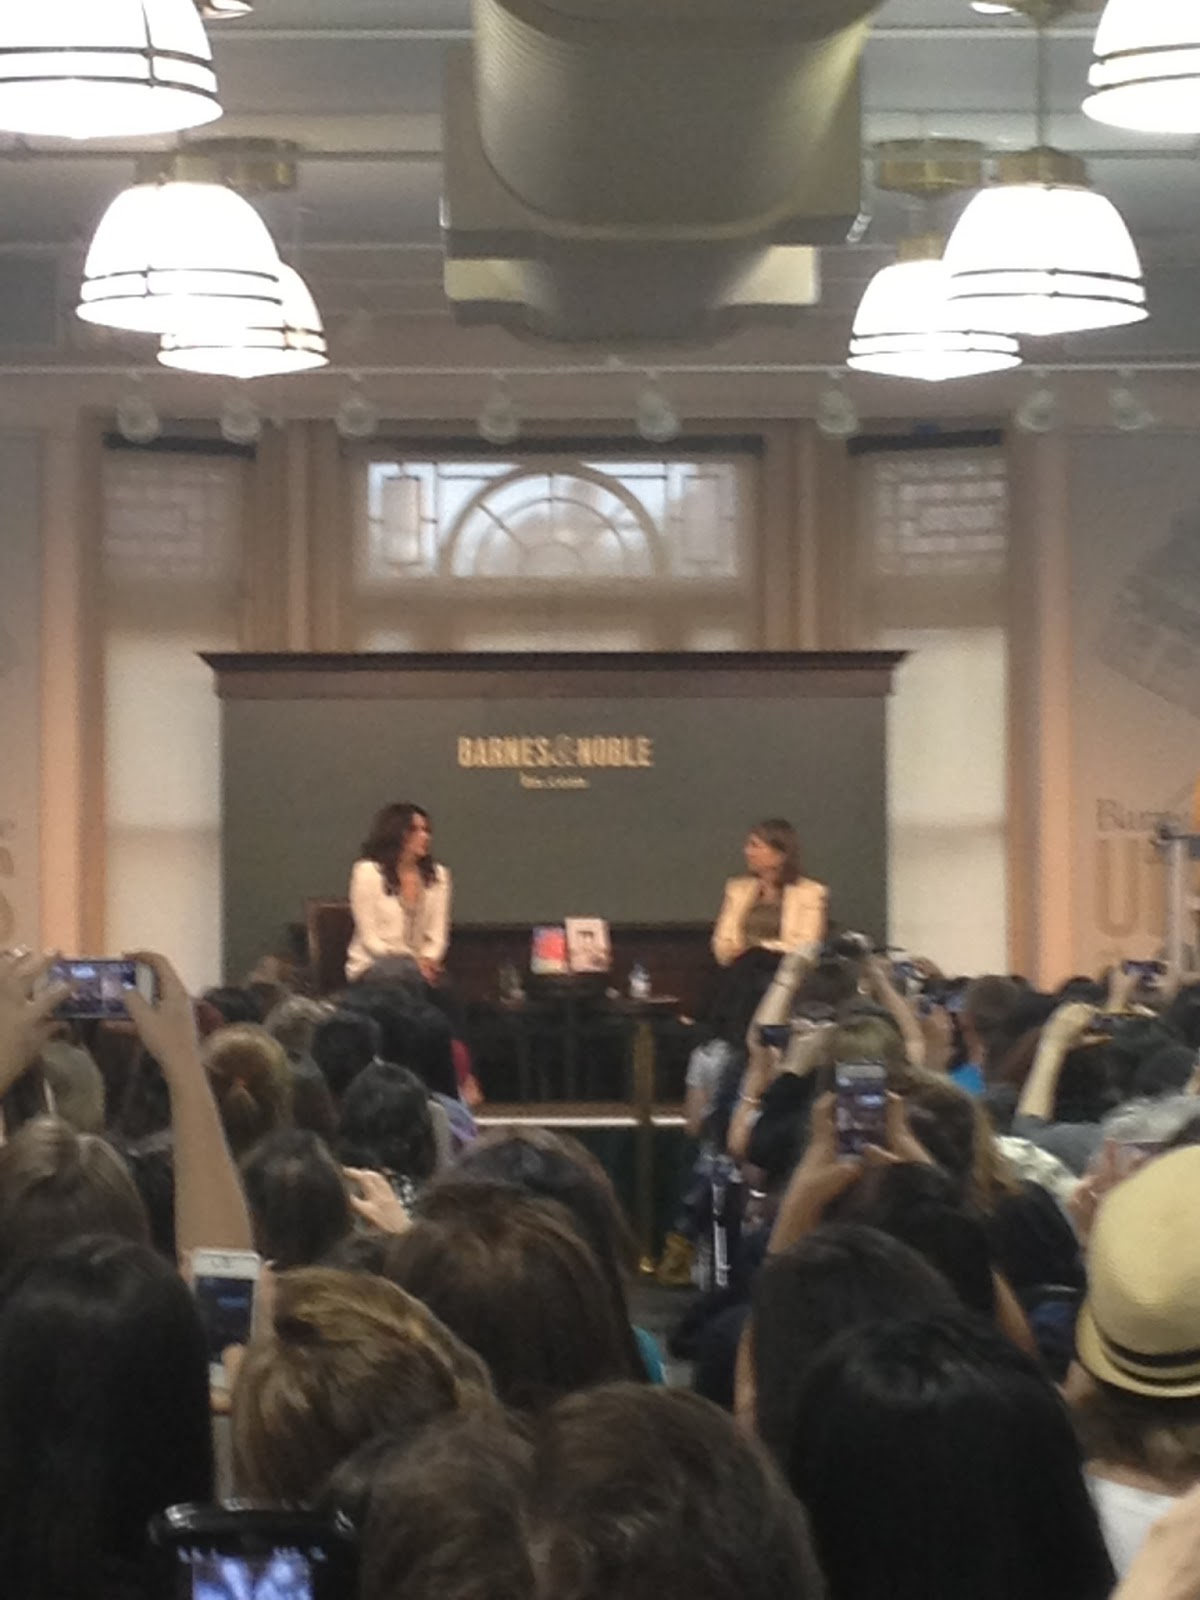 my first book signing someday someday be ummm now what we saw lauren graham who wrote a book called someday someday be and guys anna quindlen was the moderator my mom loves anna quindlen